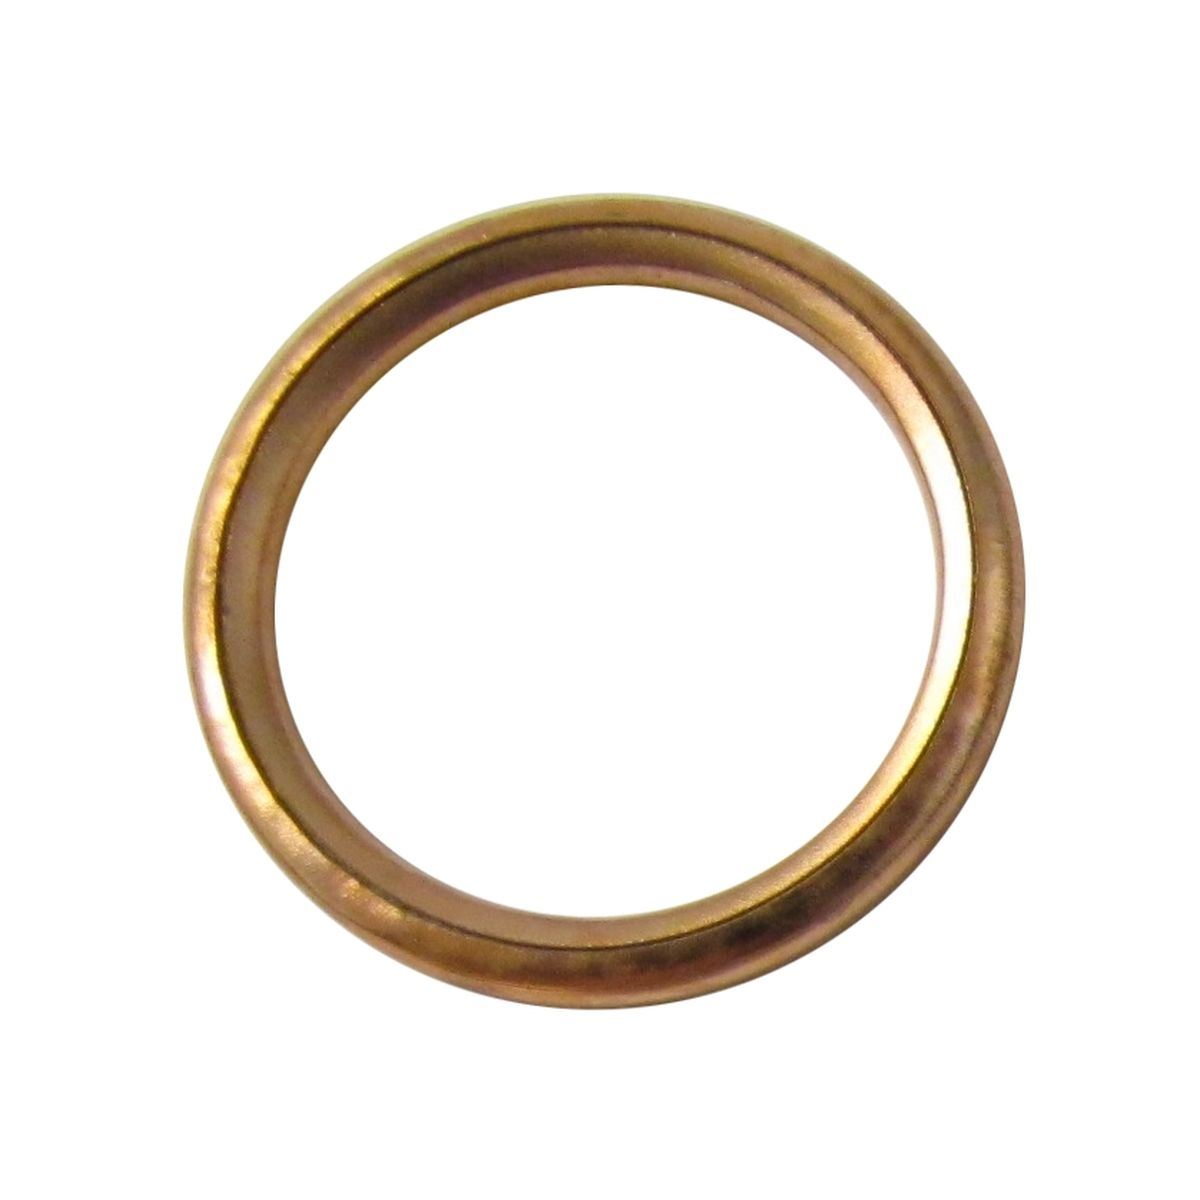 Exhaust Gasket Copper 1 For 1986 Honda CF 70 Chaly